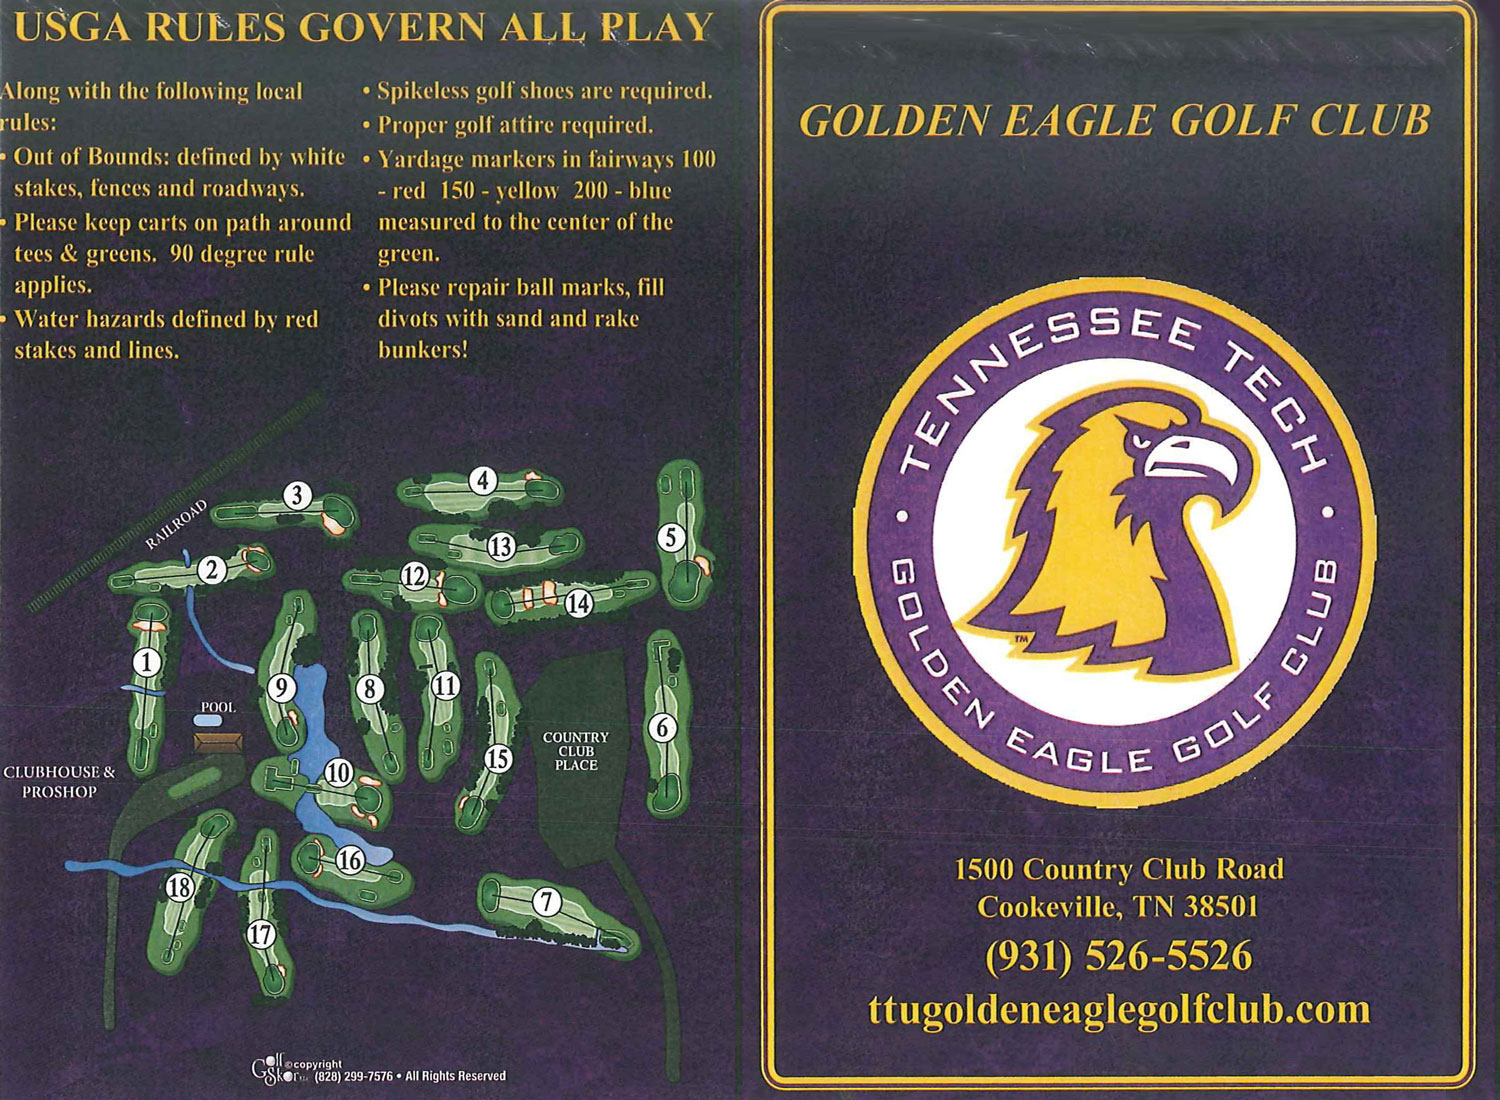 Golden-Eagle-Golf-Club-Scorecard-1